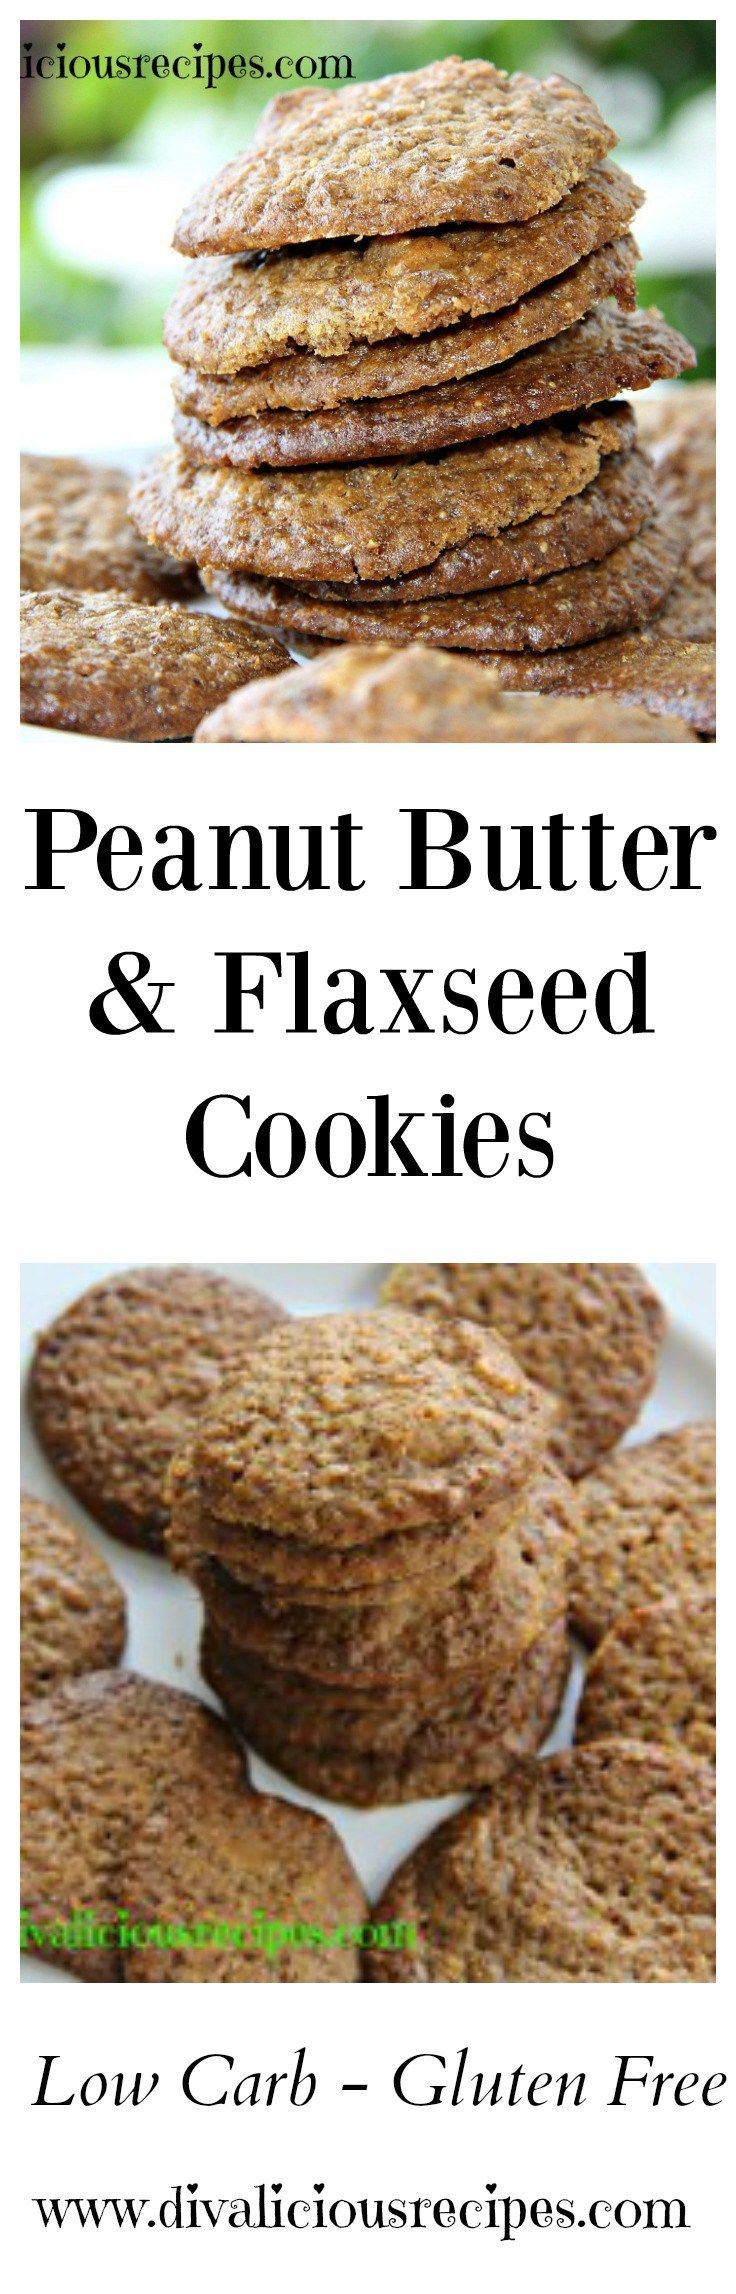 Peanut butter and ground flaxseed come together to make a healthy and filling cookie. Gluten free and low in carbs these cookies are a great snack.